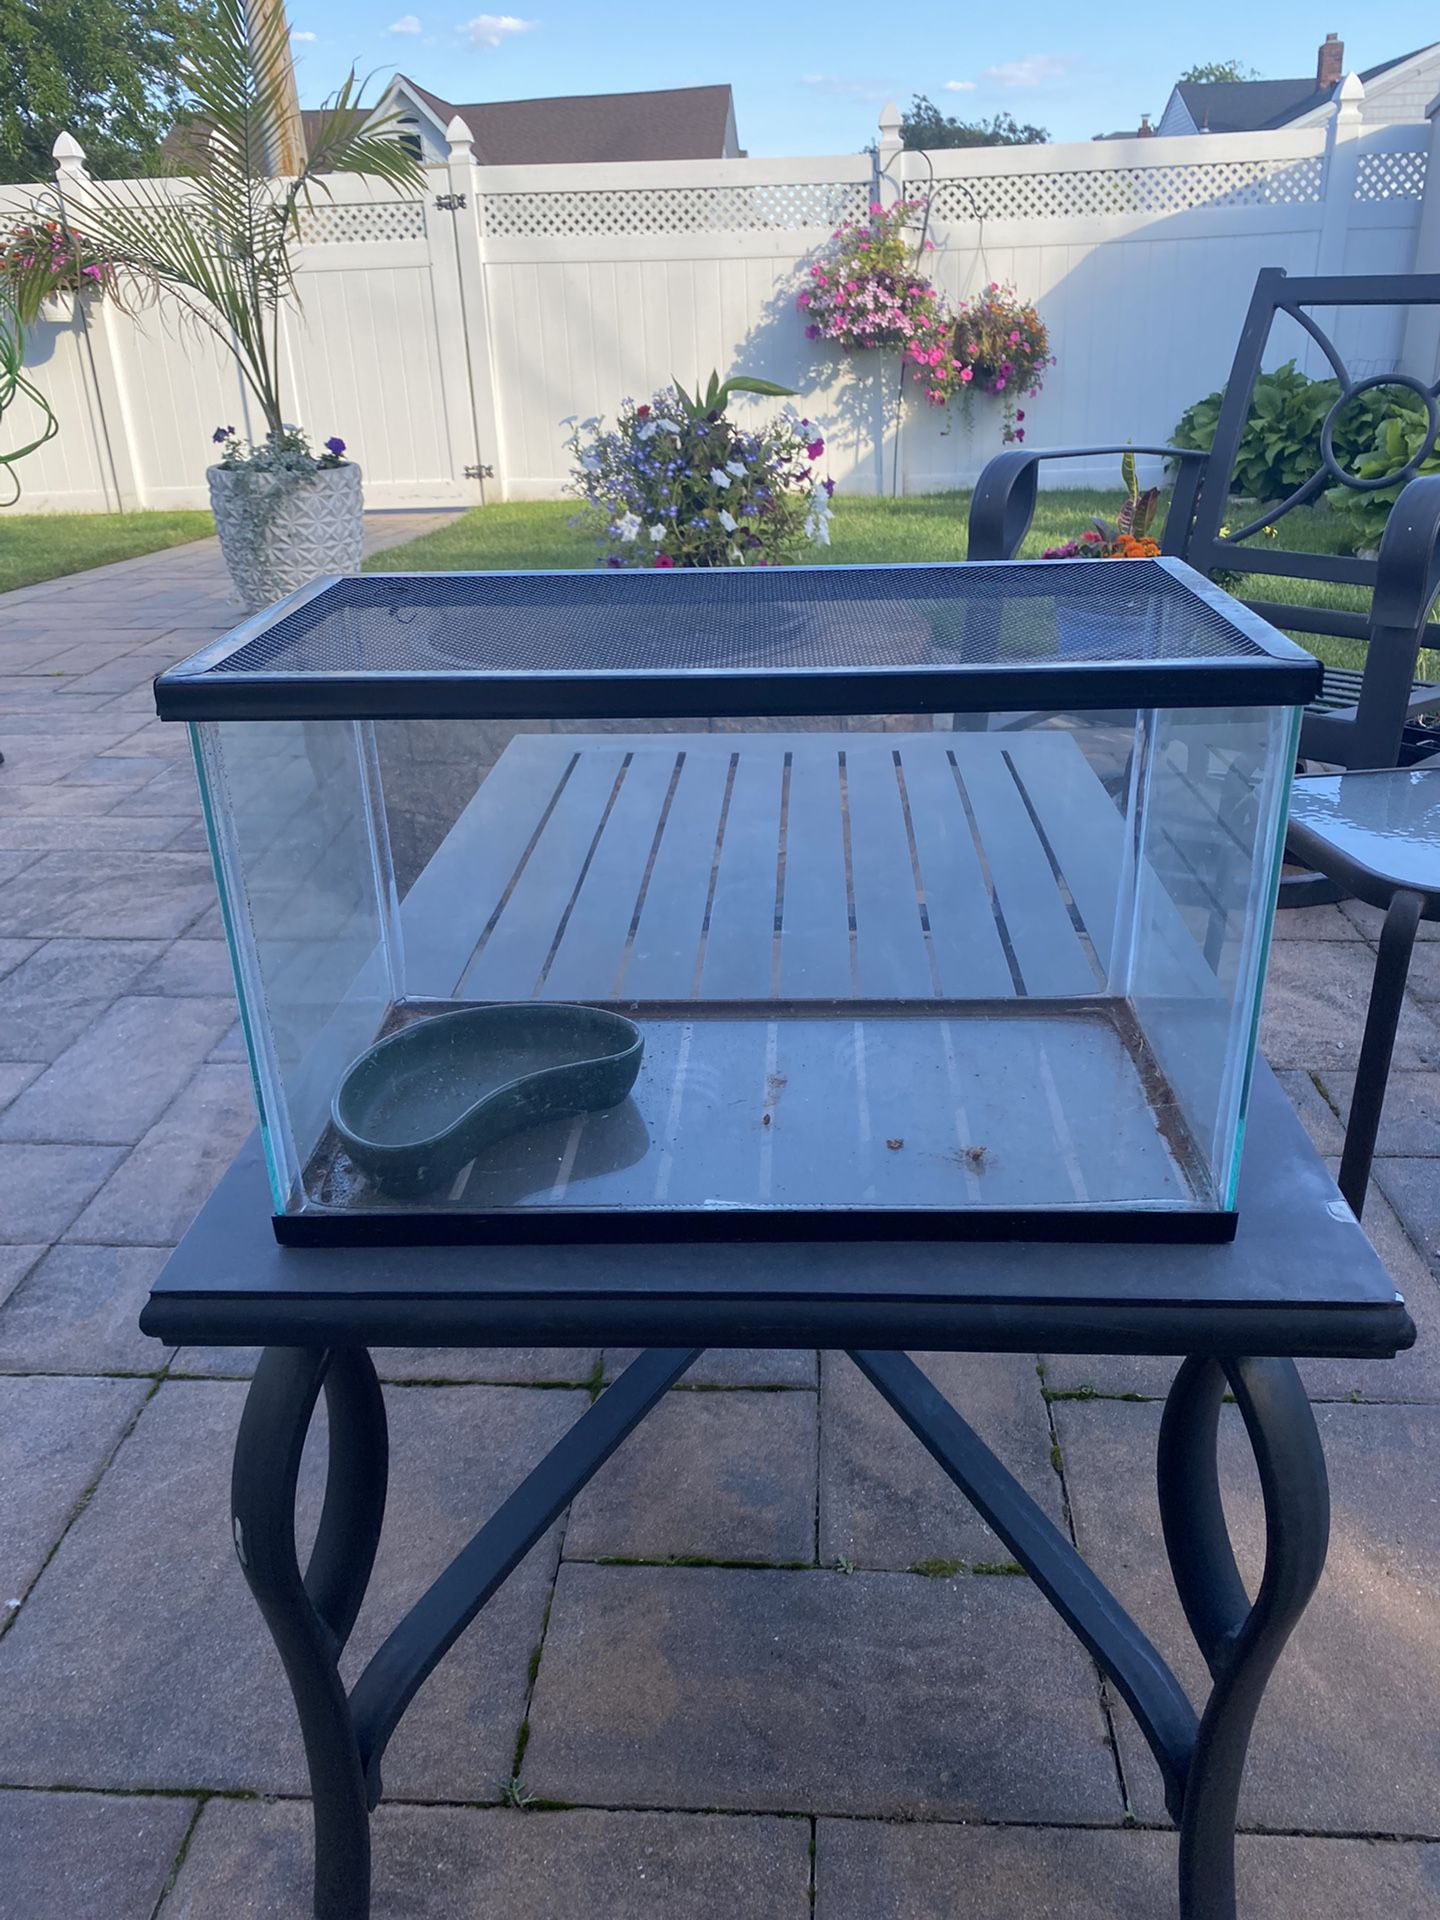 10 Gallon Fish Tank With Bowl And Net Top